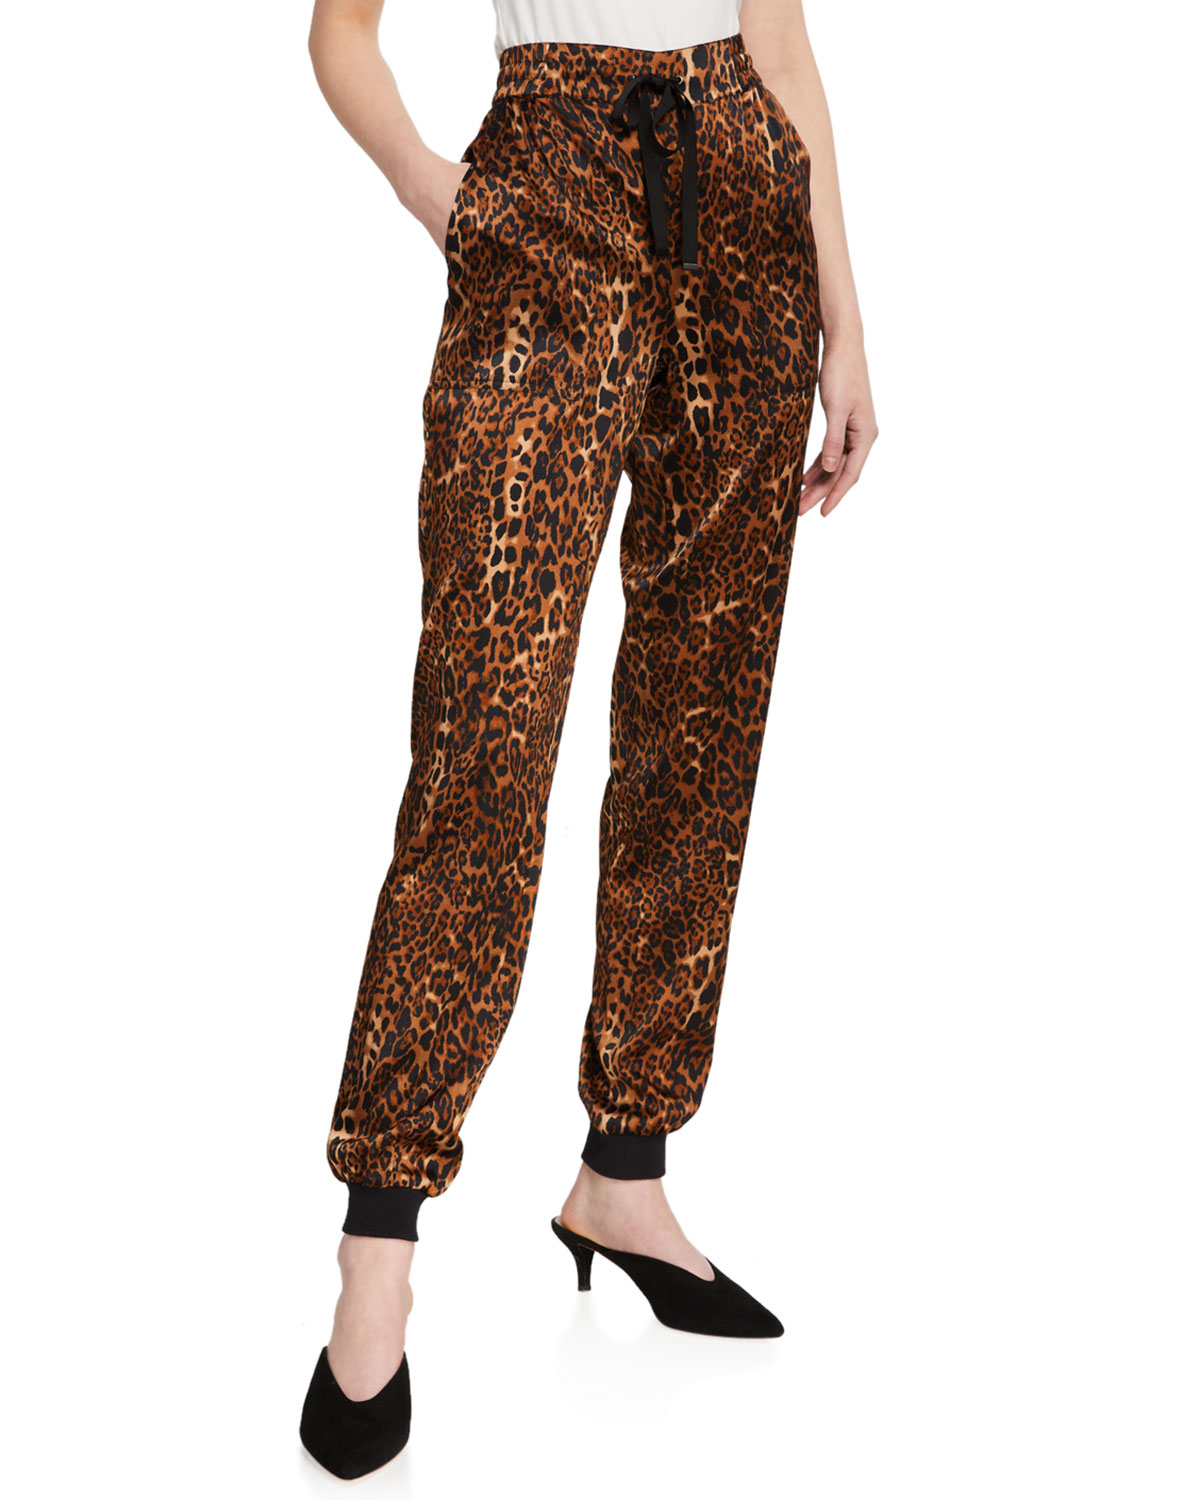 Cami Nyc Pants THE ZOE ANIMAL PRINT JOGGER PANTS